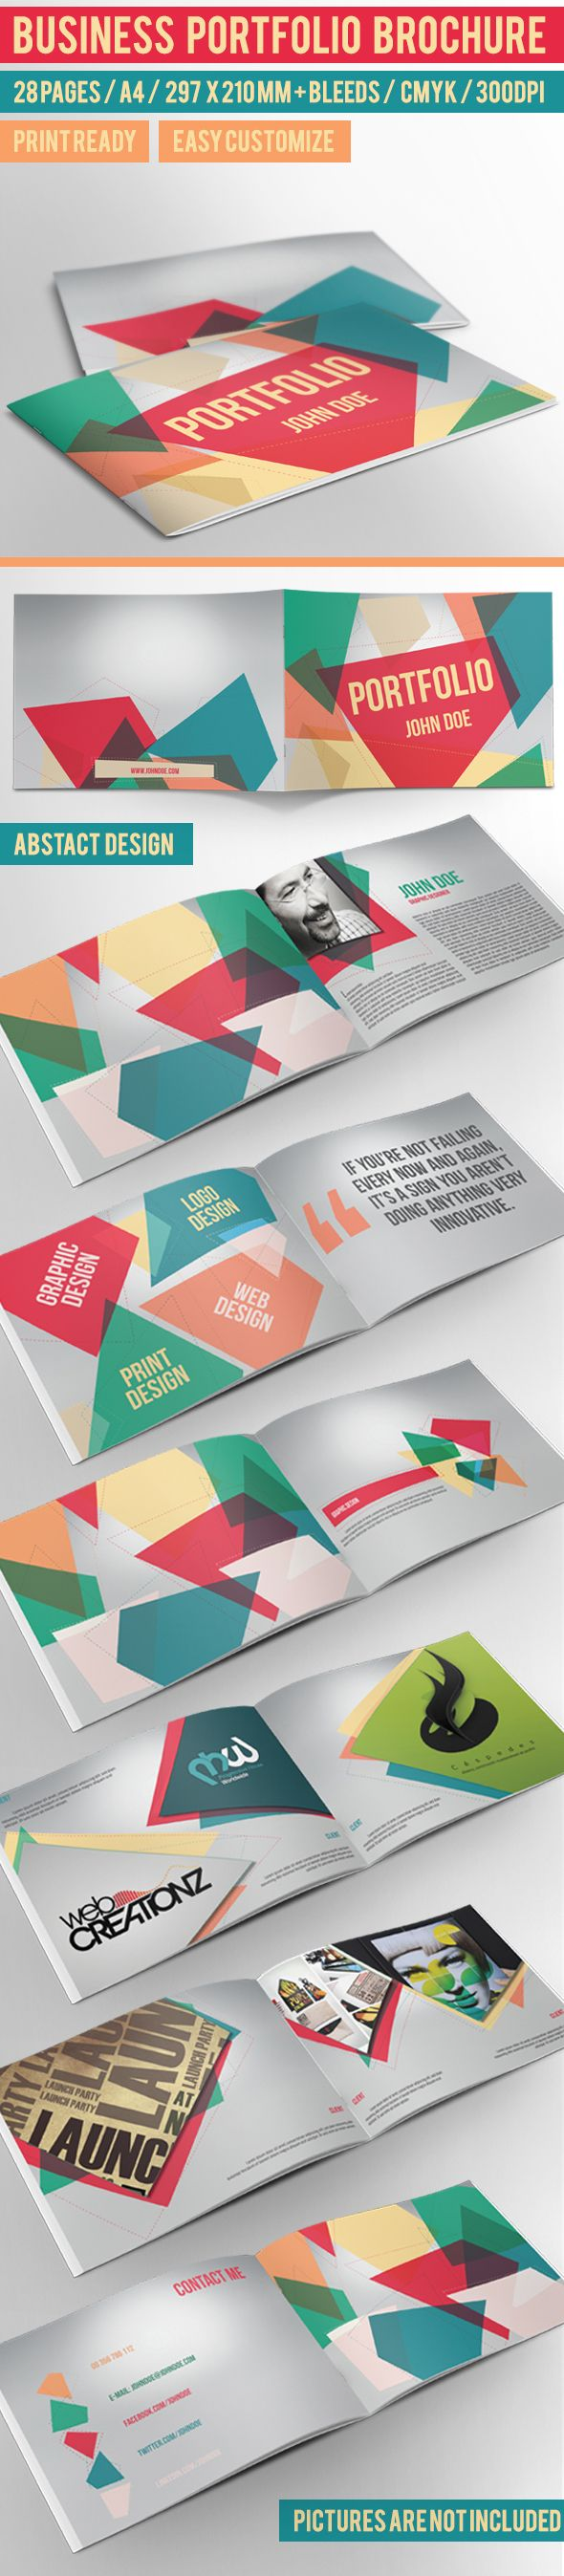 business portfolio brochure indesign template by crew55design via